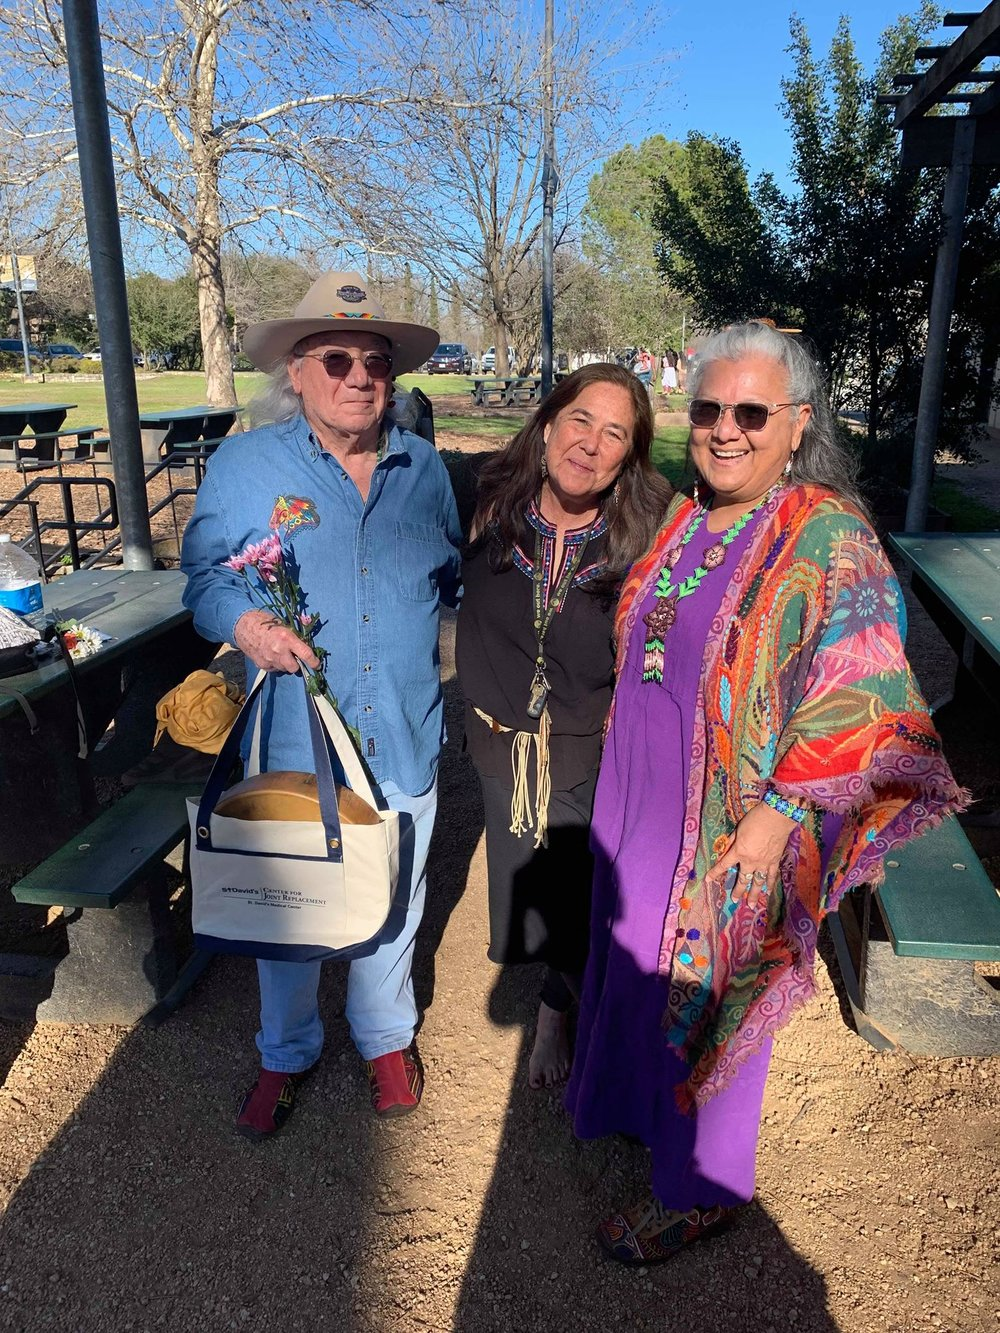 What made this blessing special was the way Cheryl shared space with our Coahuiltecan elders. -